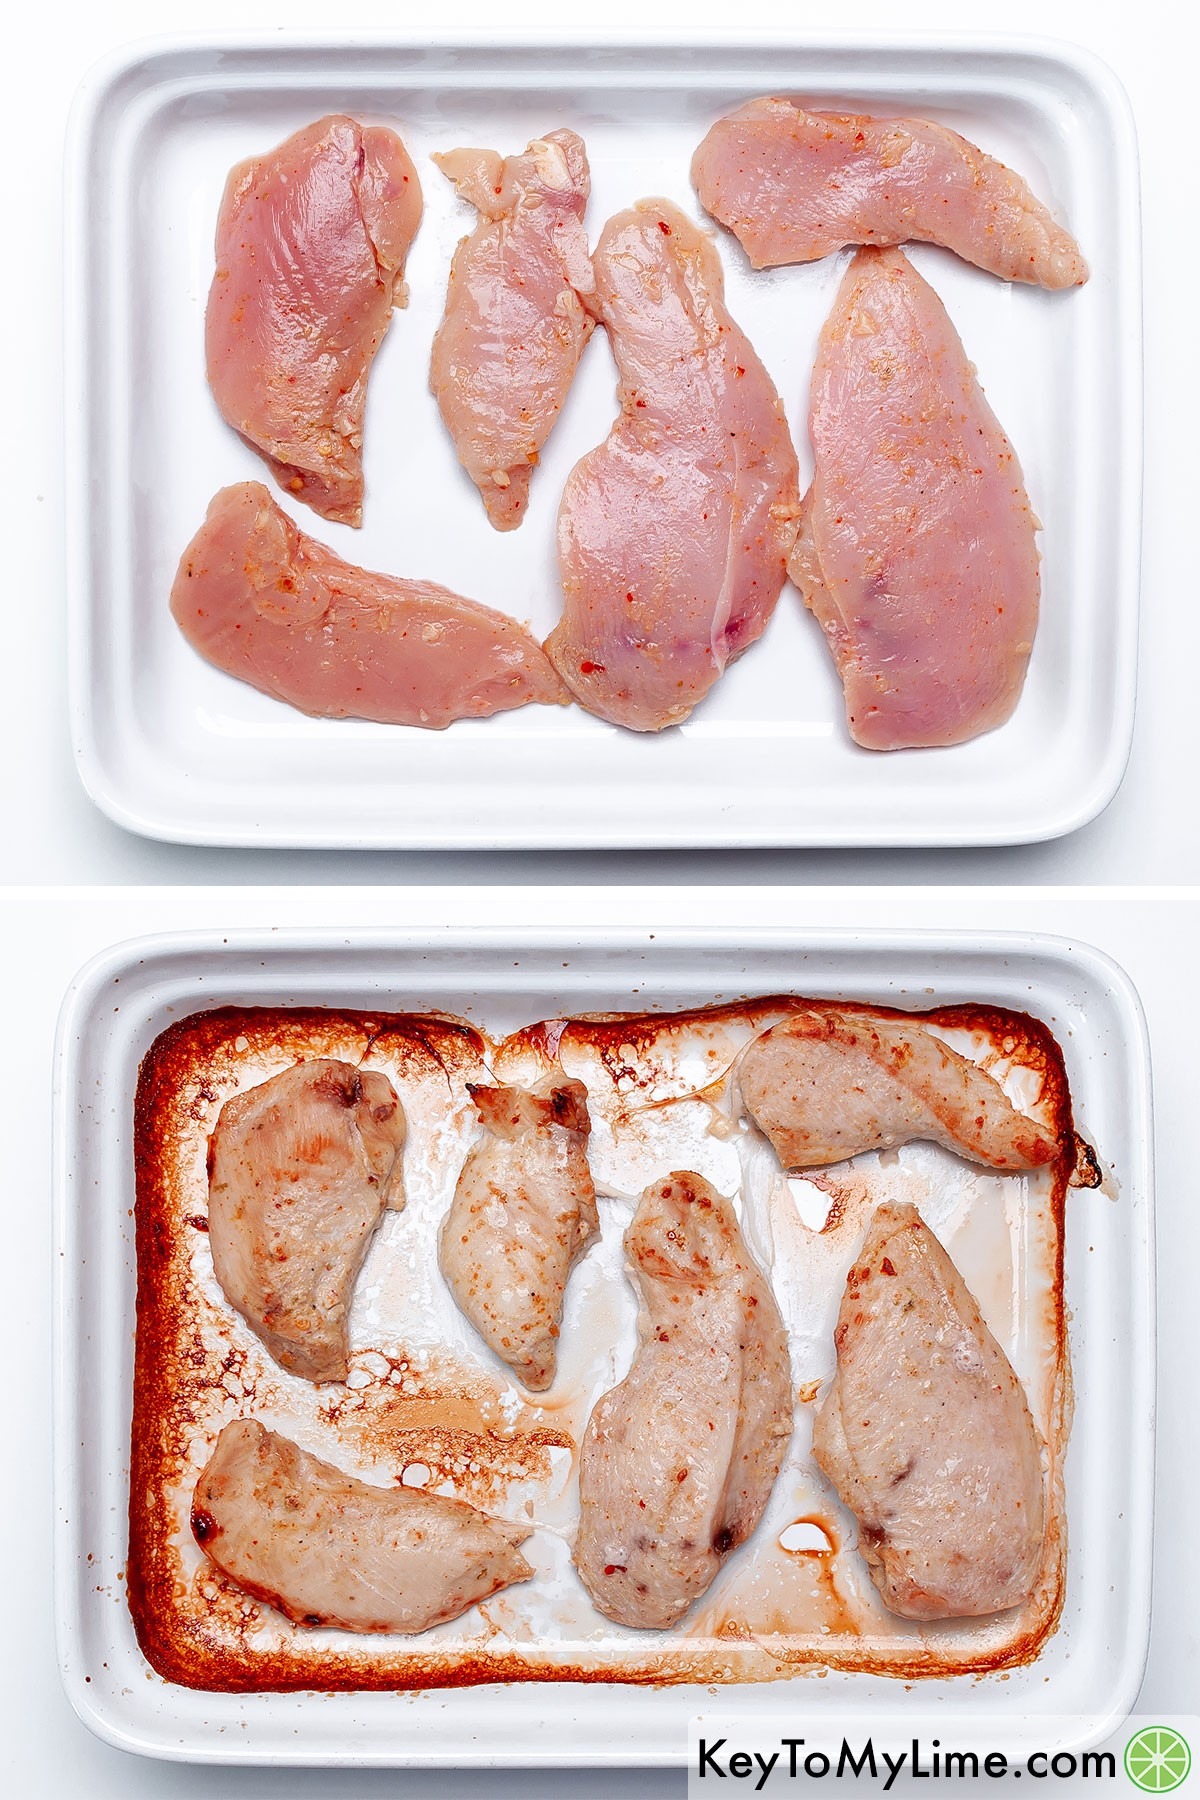 A process collage showing chili lime chicken before and after baking it.